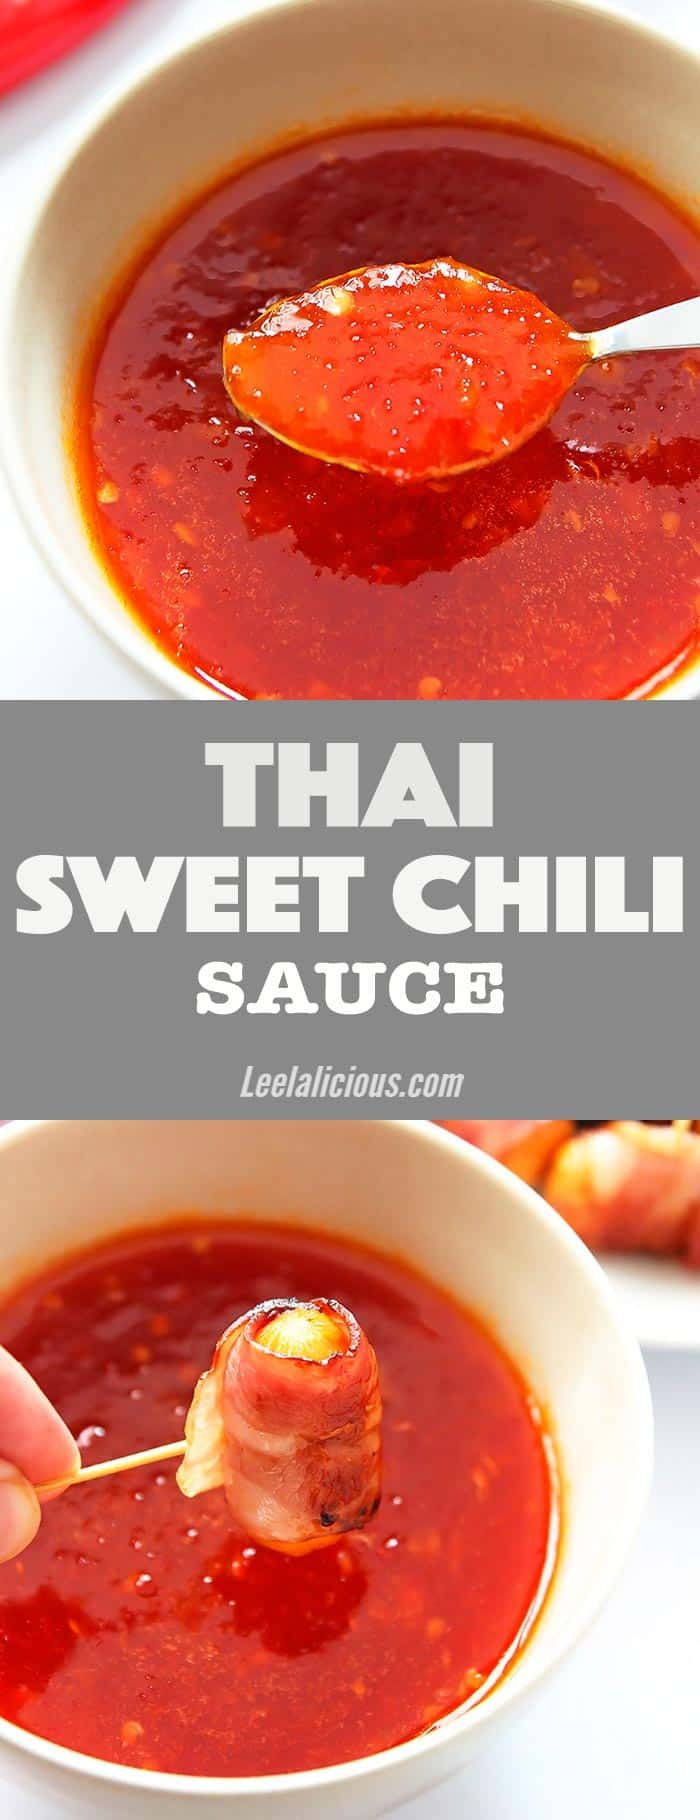 Thai Sweet Chili Sauce Clean Eating Use On Baked Chicken Fish Like Salmon Or As A Sweet Chili Sauce Recipe Sweet Chilli Sauce Recipe Thai Sweet Chili Sauce